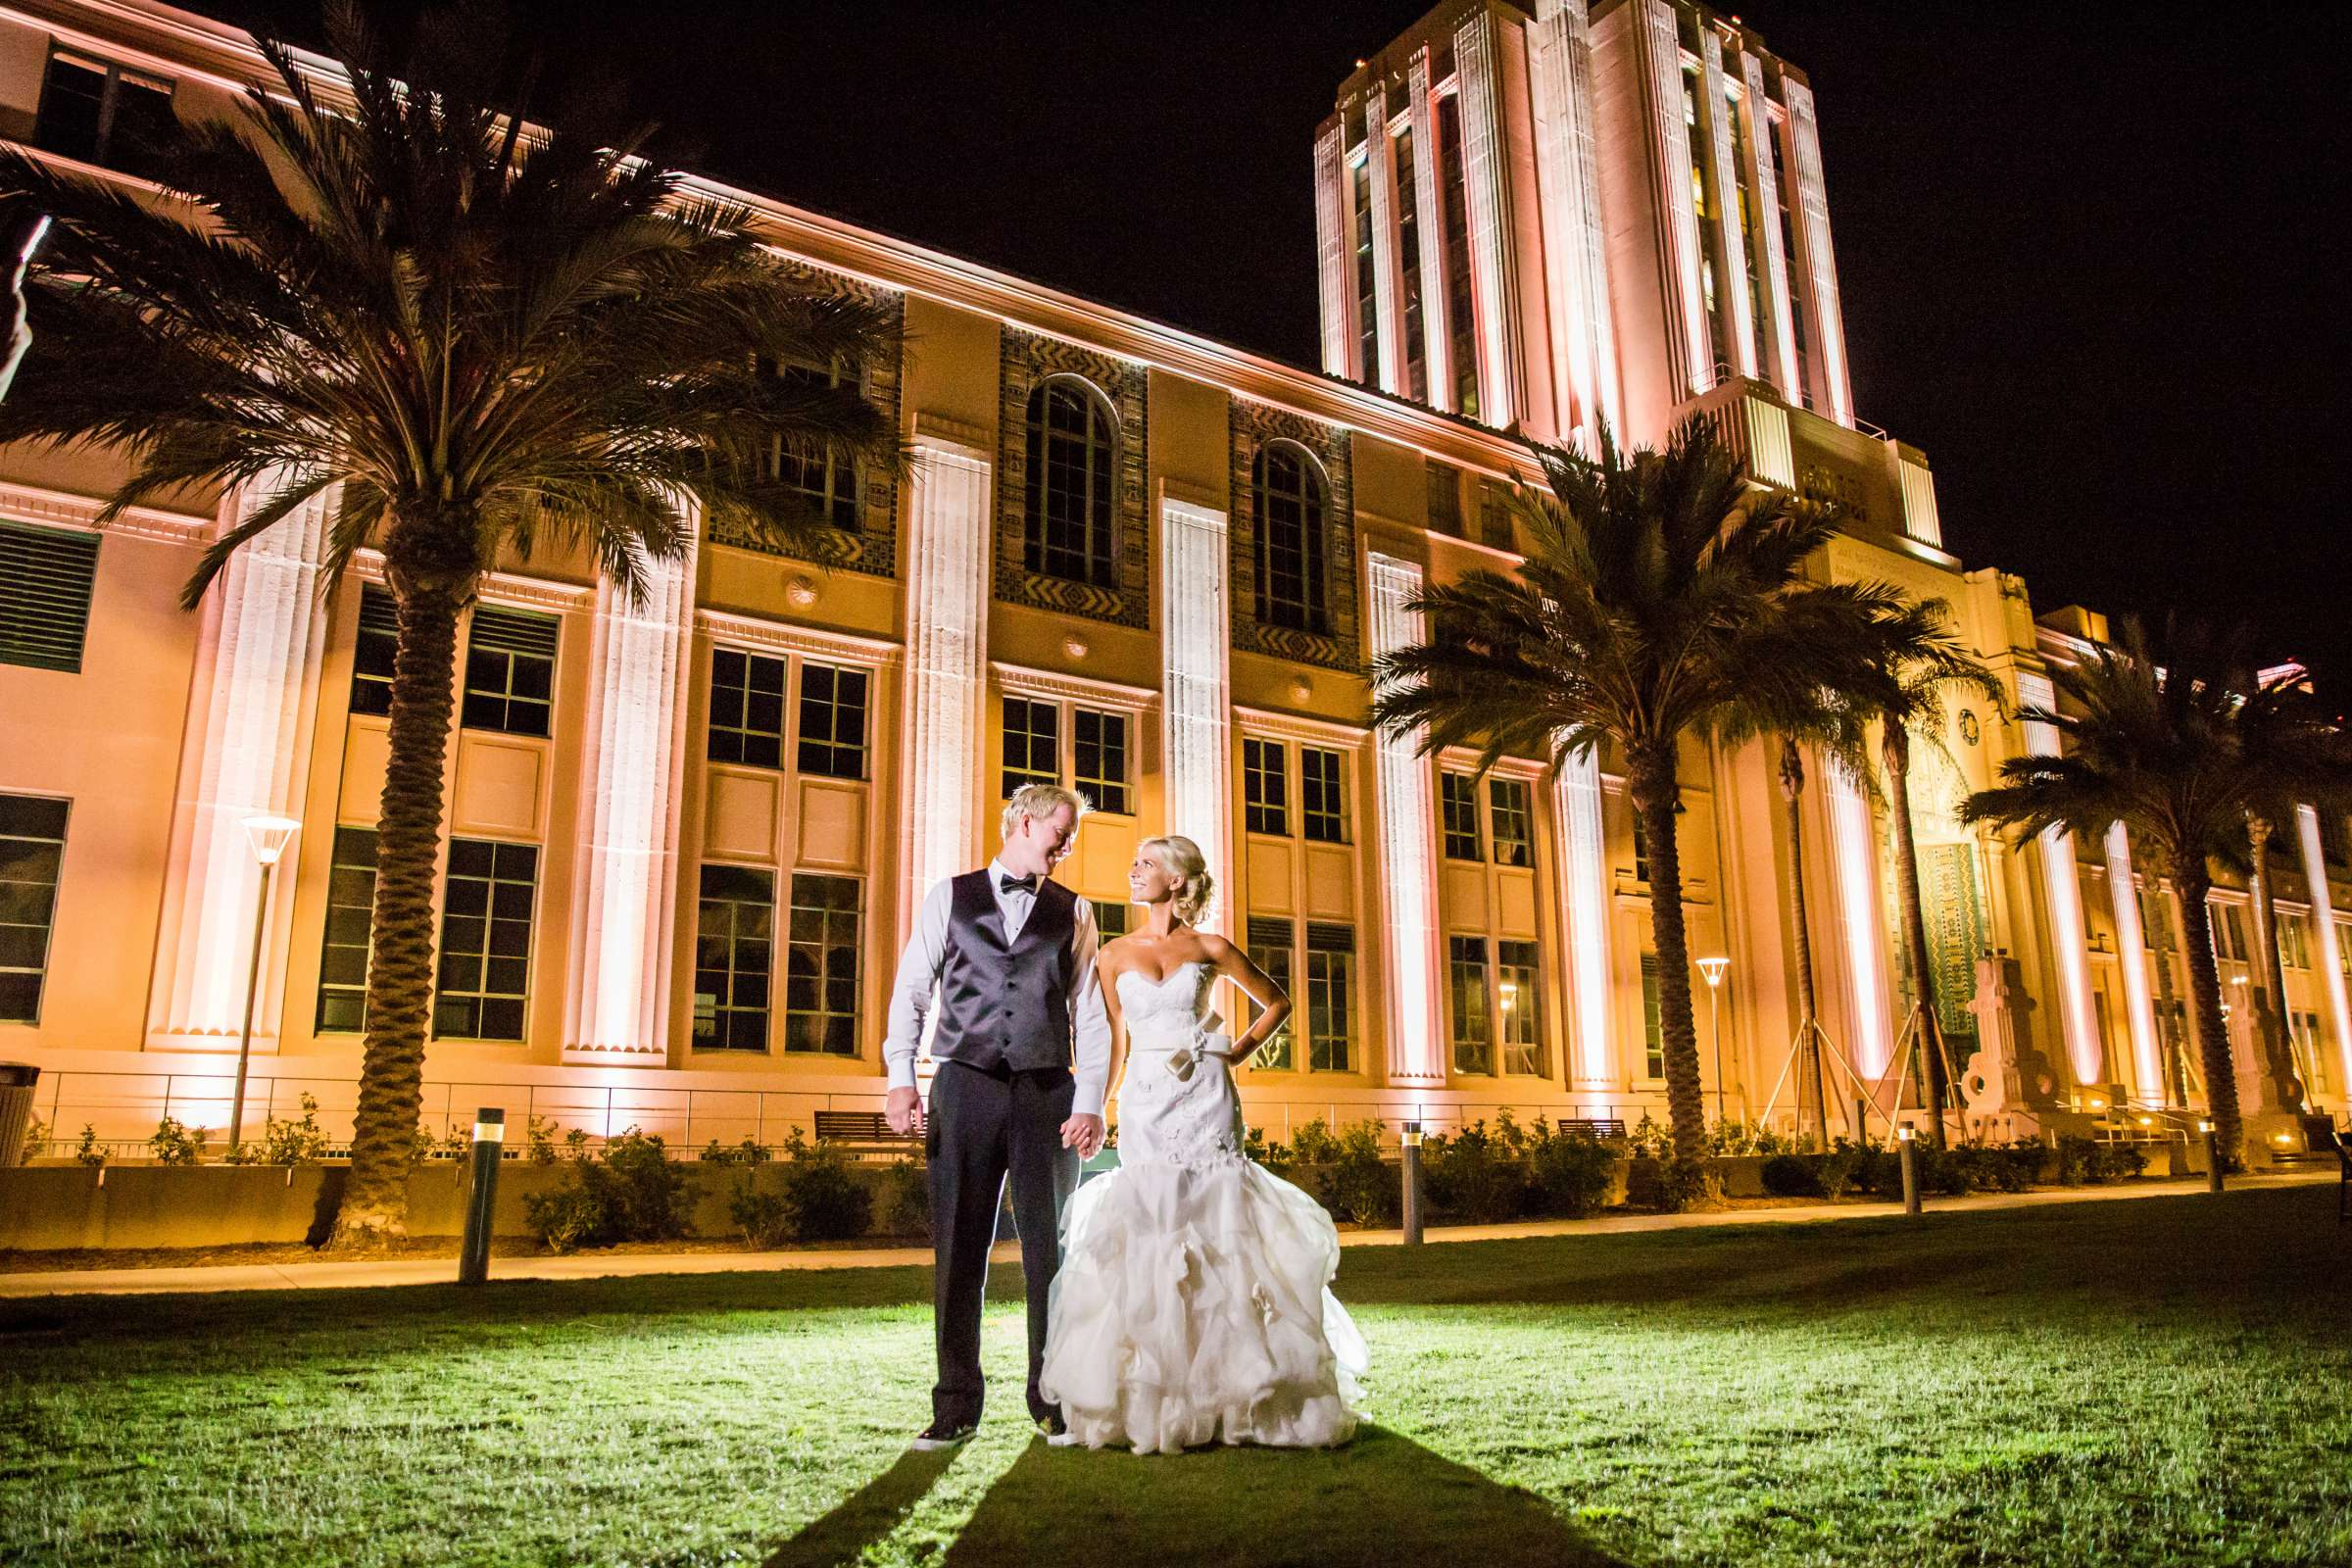 contemporary photo, Night Shot at Waterfront Park Wedding coordinated by Socal Soiree, Jennell and Terry Wedding Photo #1 by True Photography